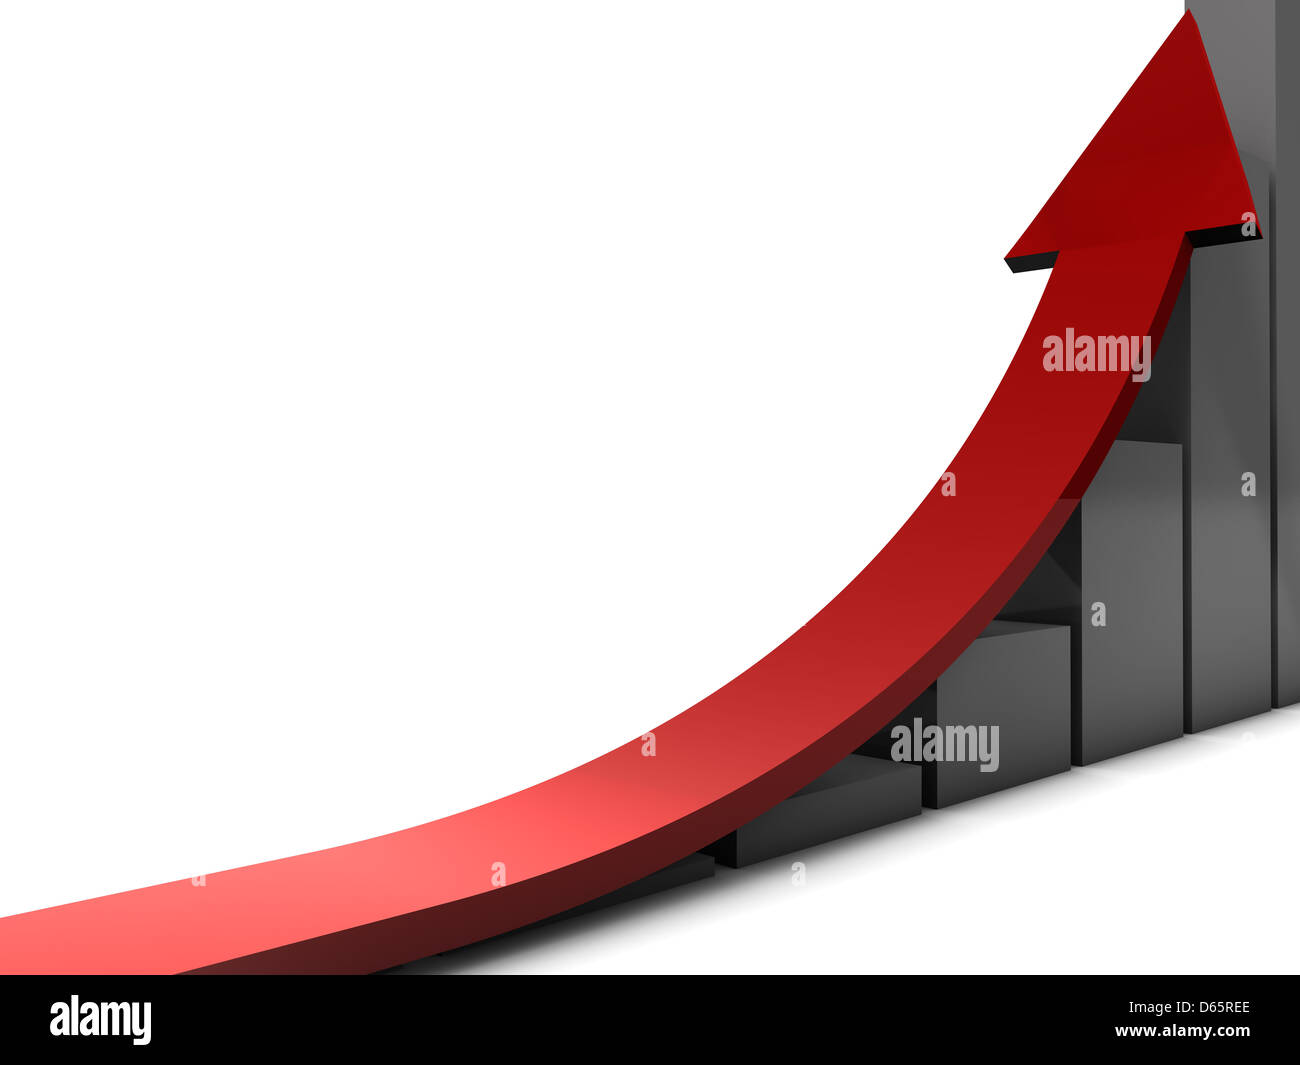 Stock priceupswingeconomic growthcolumn chart stock photo stock priceupswingeconomic growthcolumn chart nvjuhfo Gallery